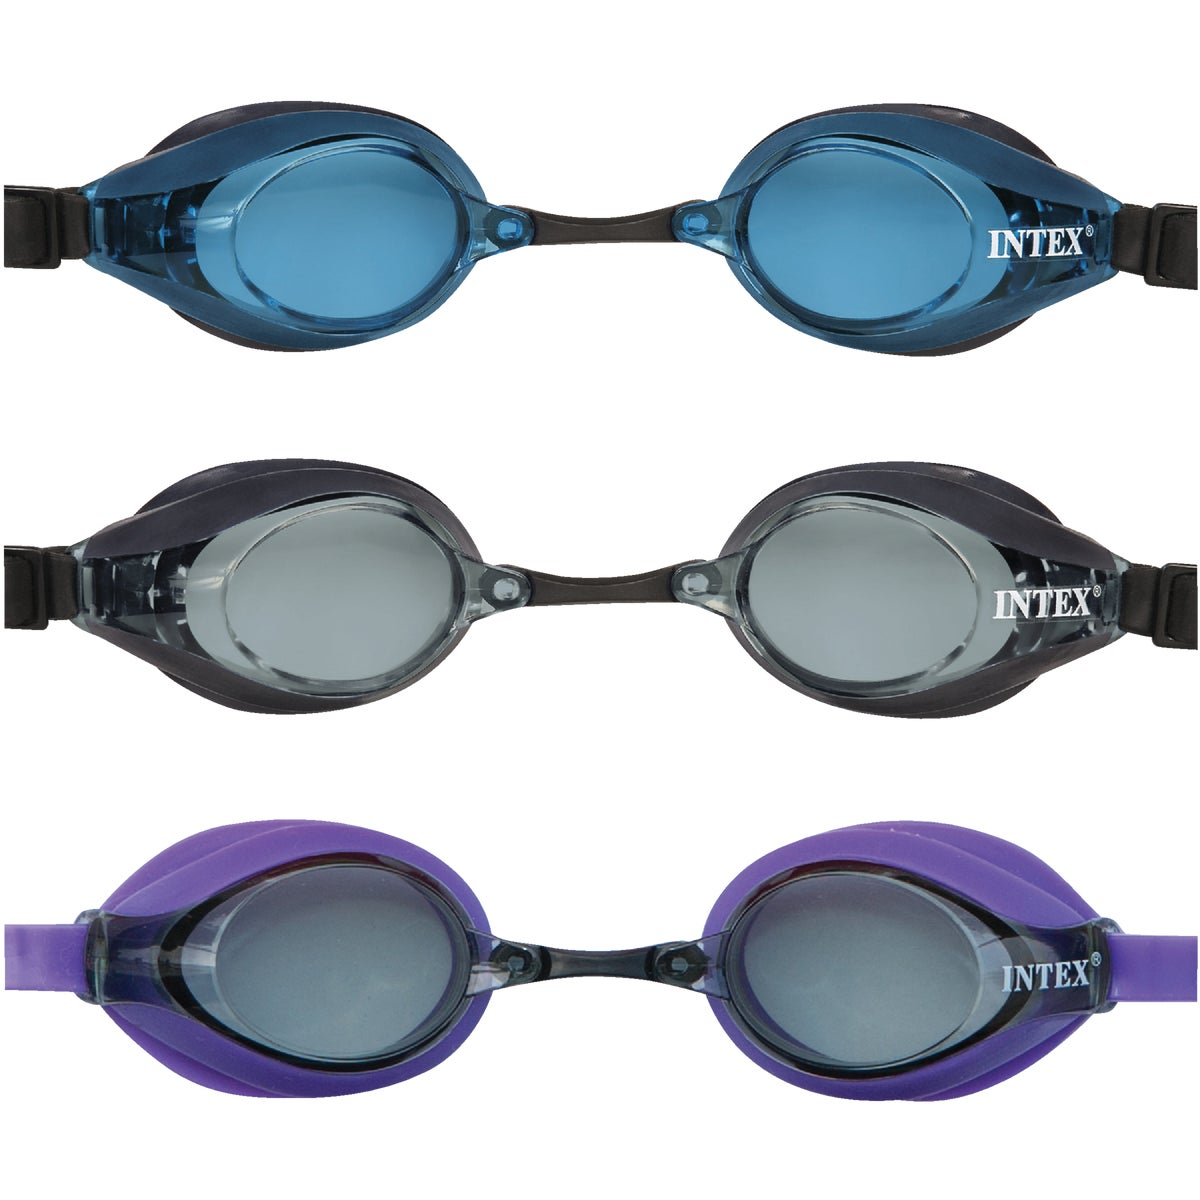 PRO RACING GOGGLES - 55691 by Intex Recreation